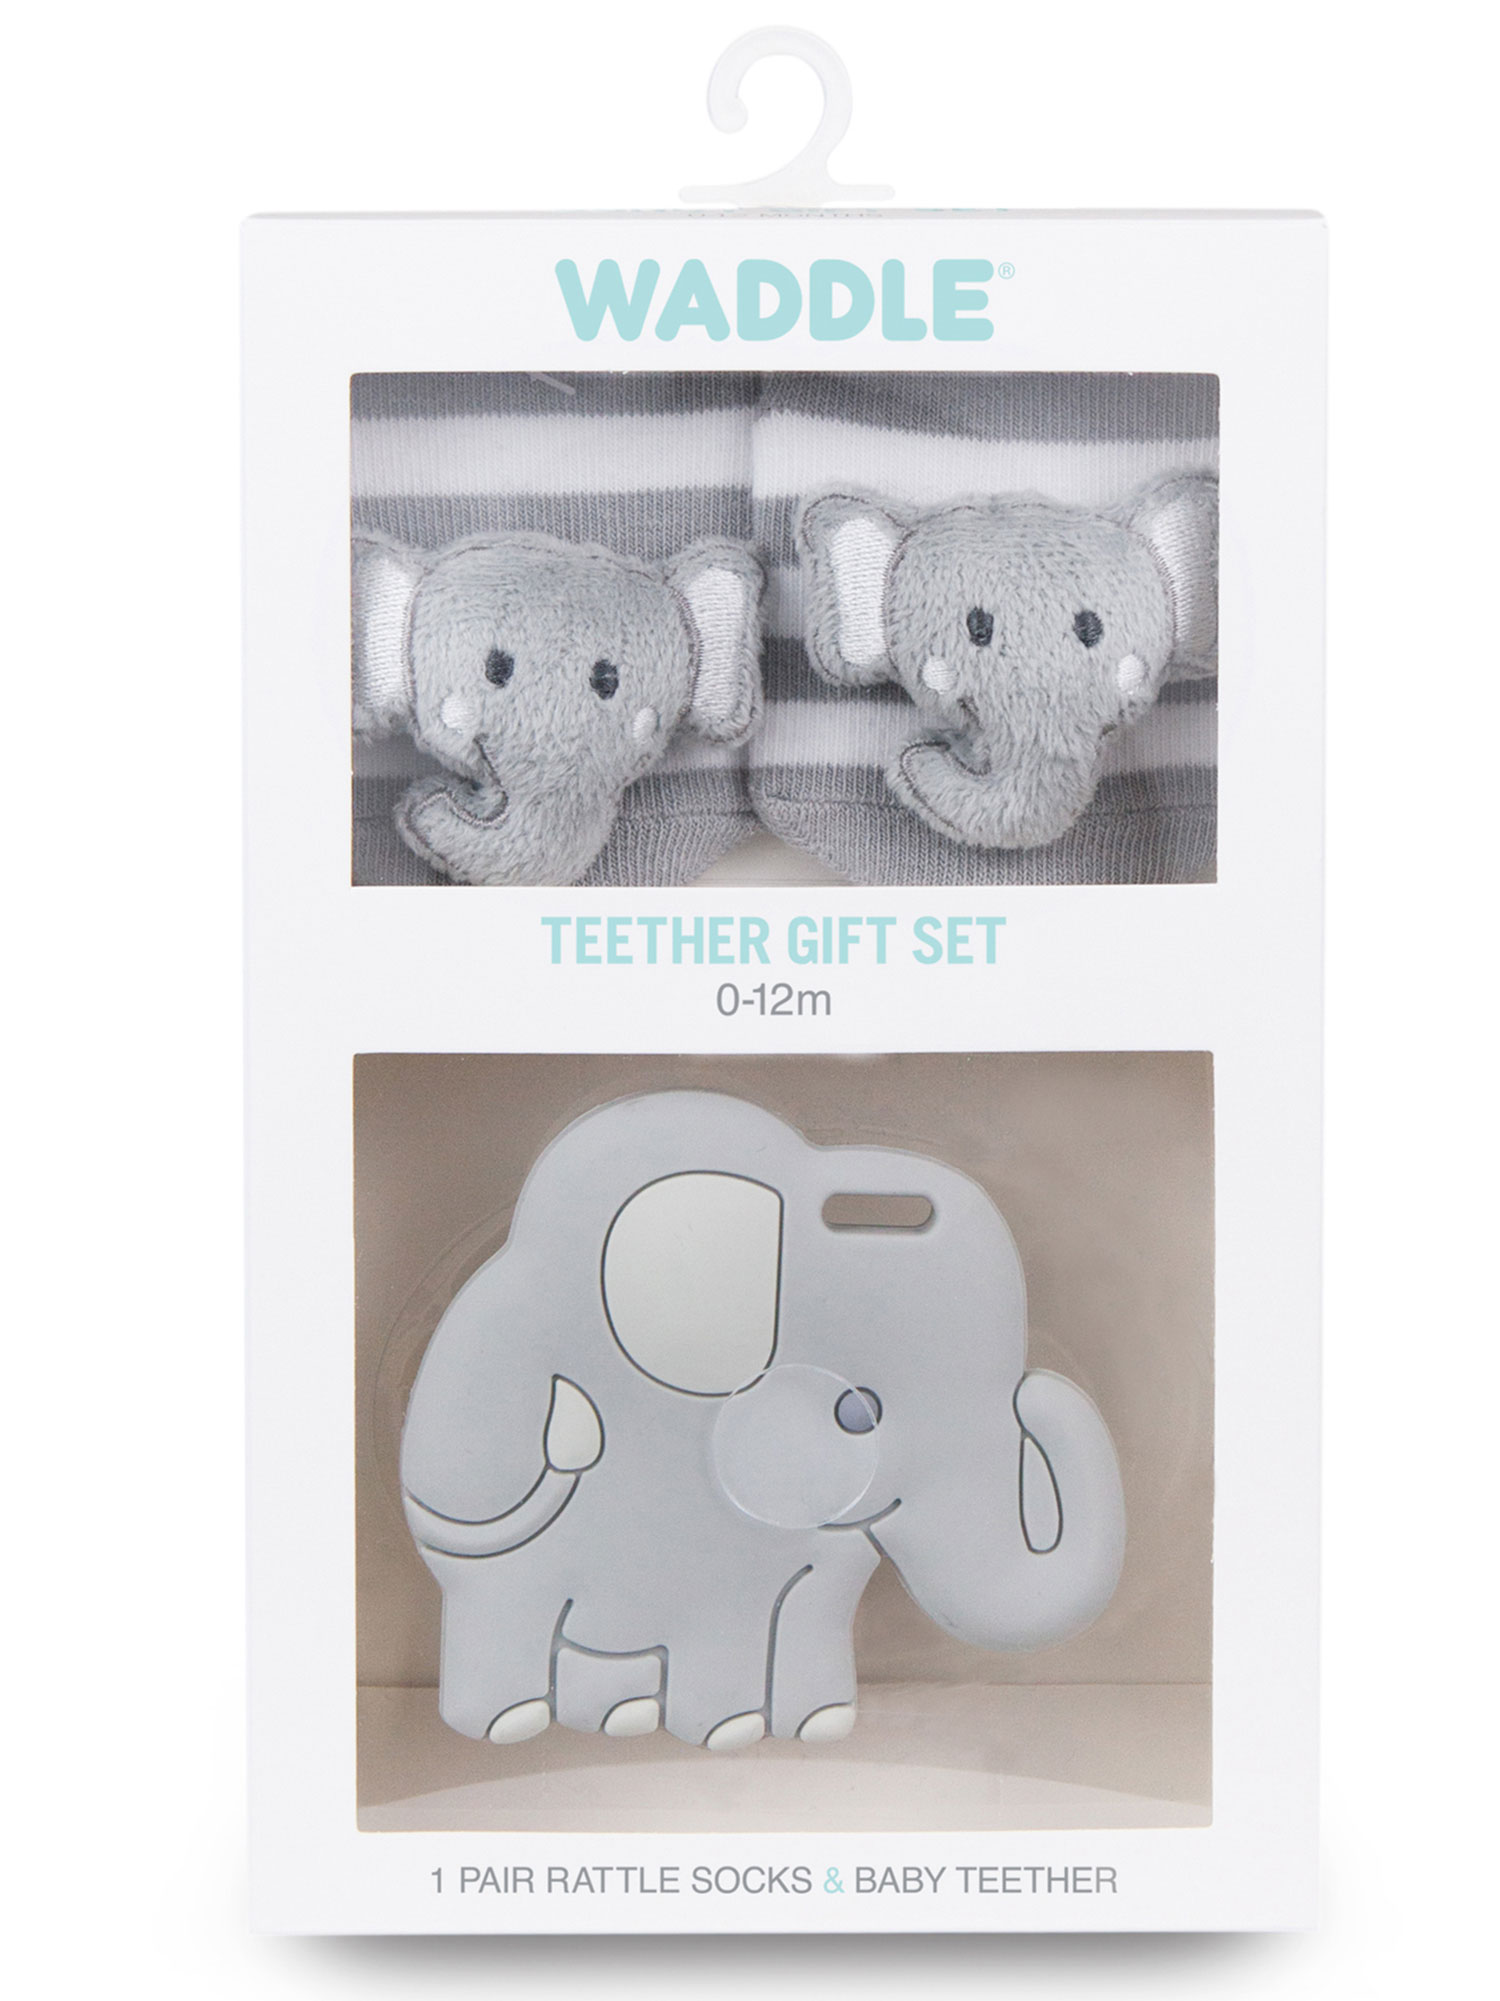 7ba43ec2e6c9f WADDLE Unisex Grey Elephant Rattle Socks and Silli Chews Baby Teether  Silicone Teething Toy Infant Pain Relief Soother Newborn Gift Set